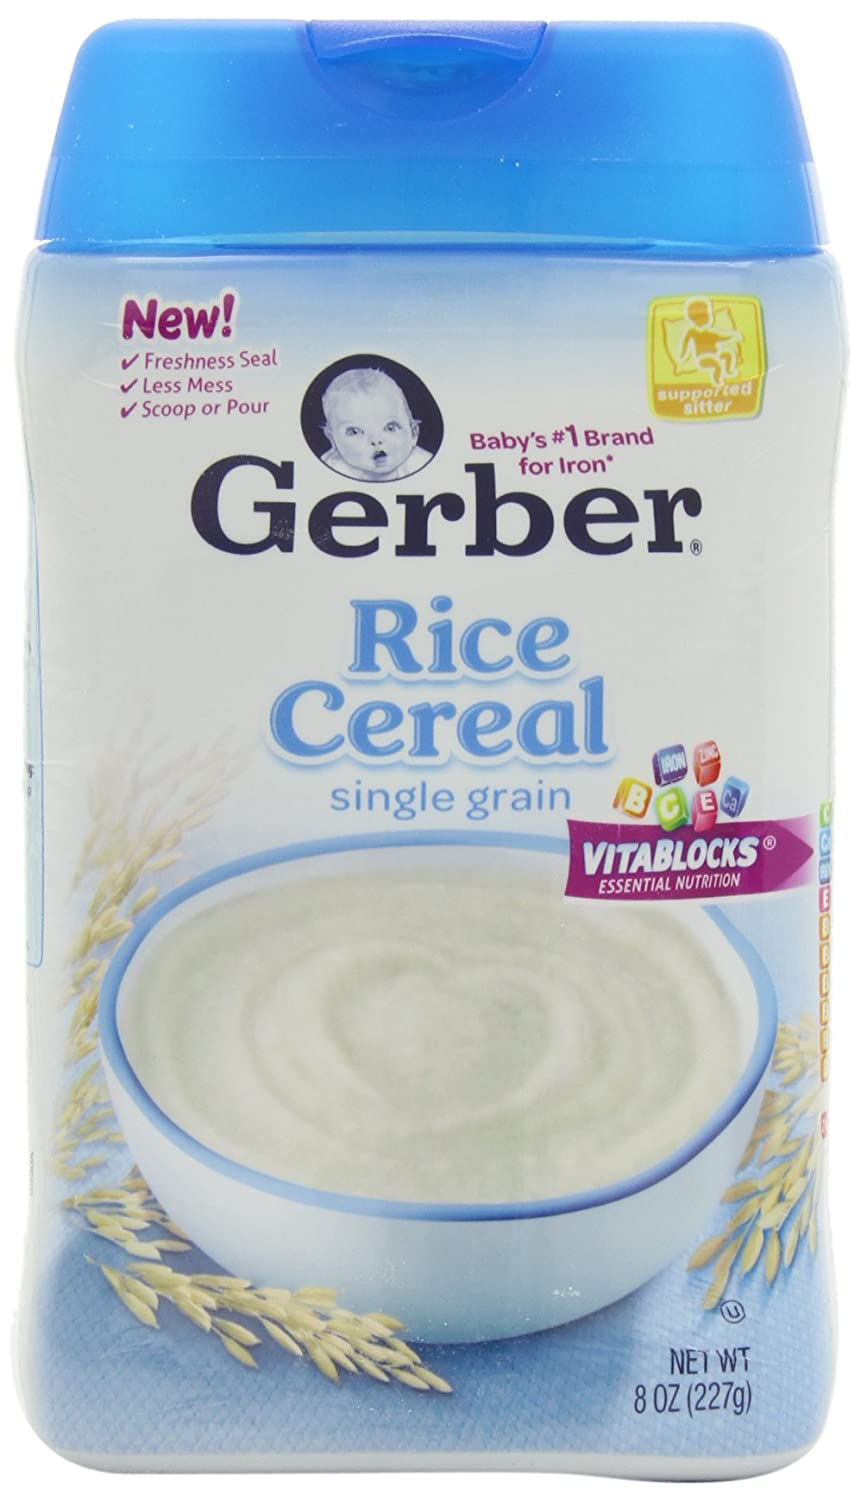 Gerber single grain rice baby cereal 8 oz pack of 6 amazon gerber single grain rice baby cereal 8 oz pack of 6 amazon grocery gourmet food ccuart Choice Image